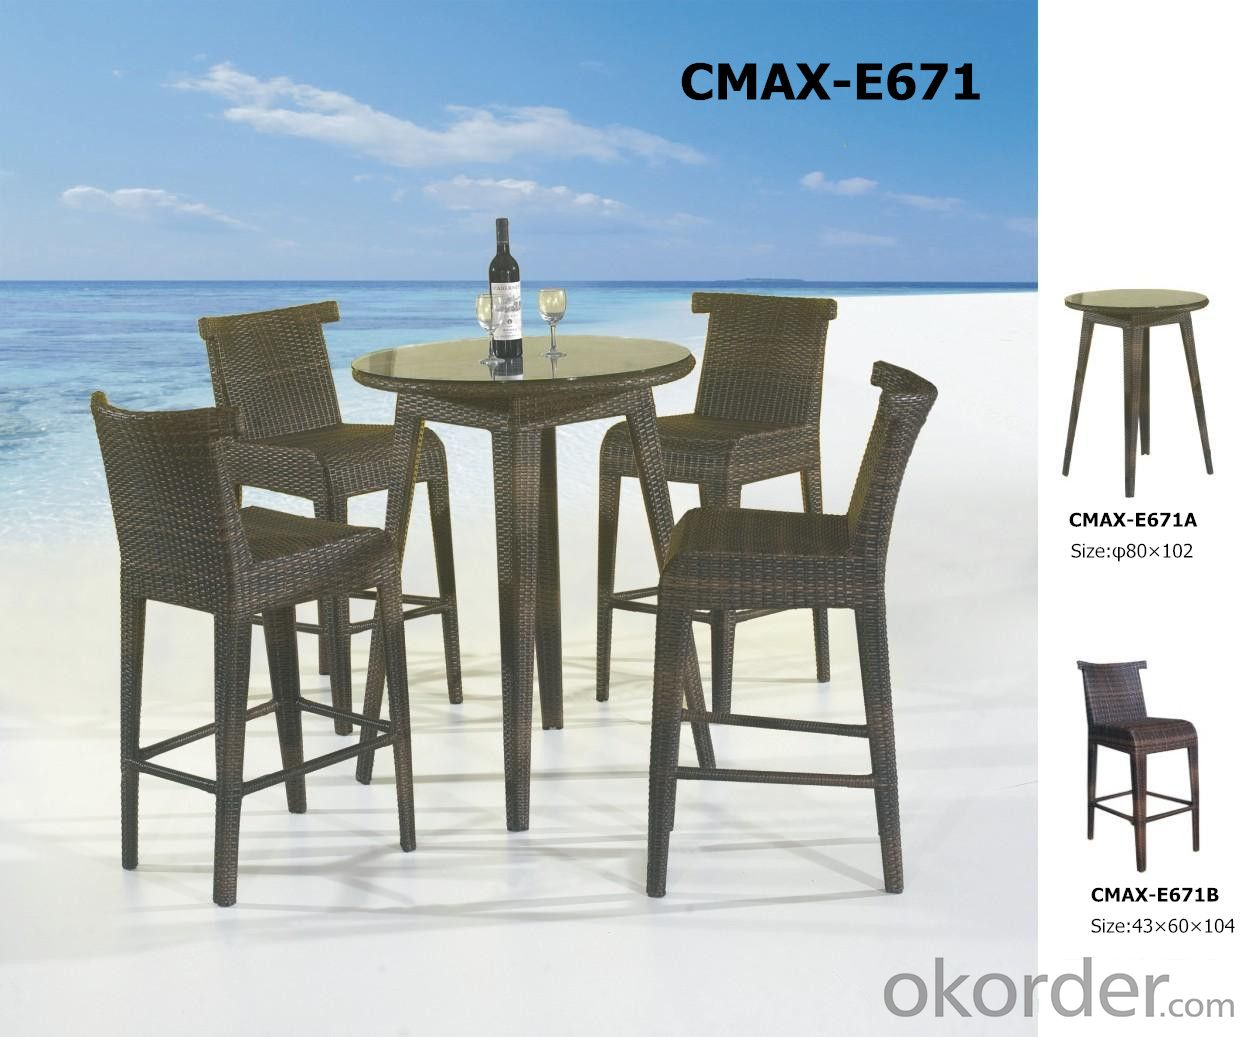 Garden Outdoor Furniture for Resturant Two Sides Chair CMAX-E672